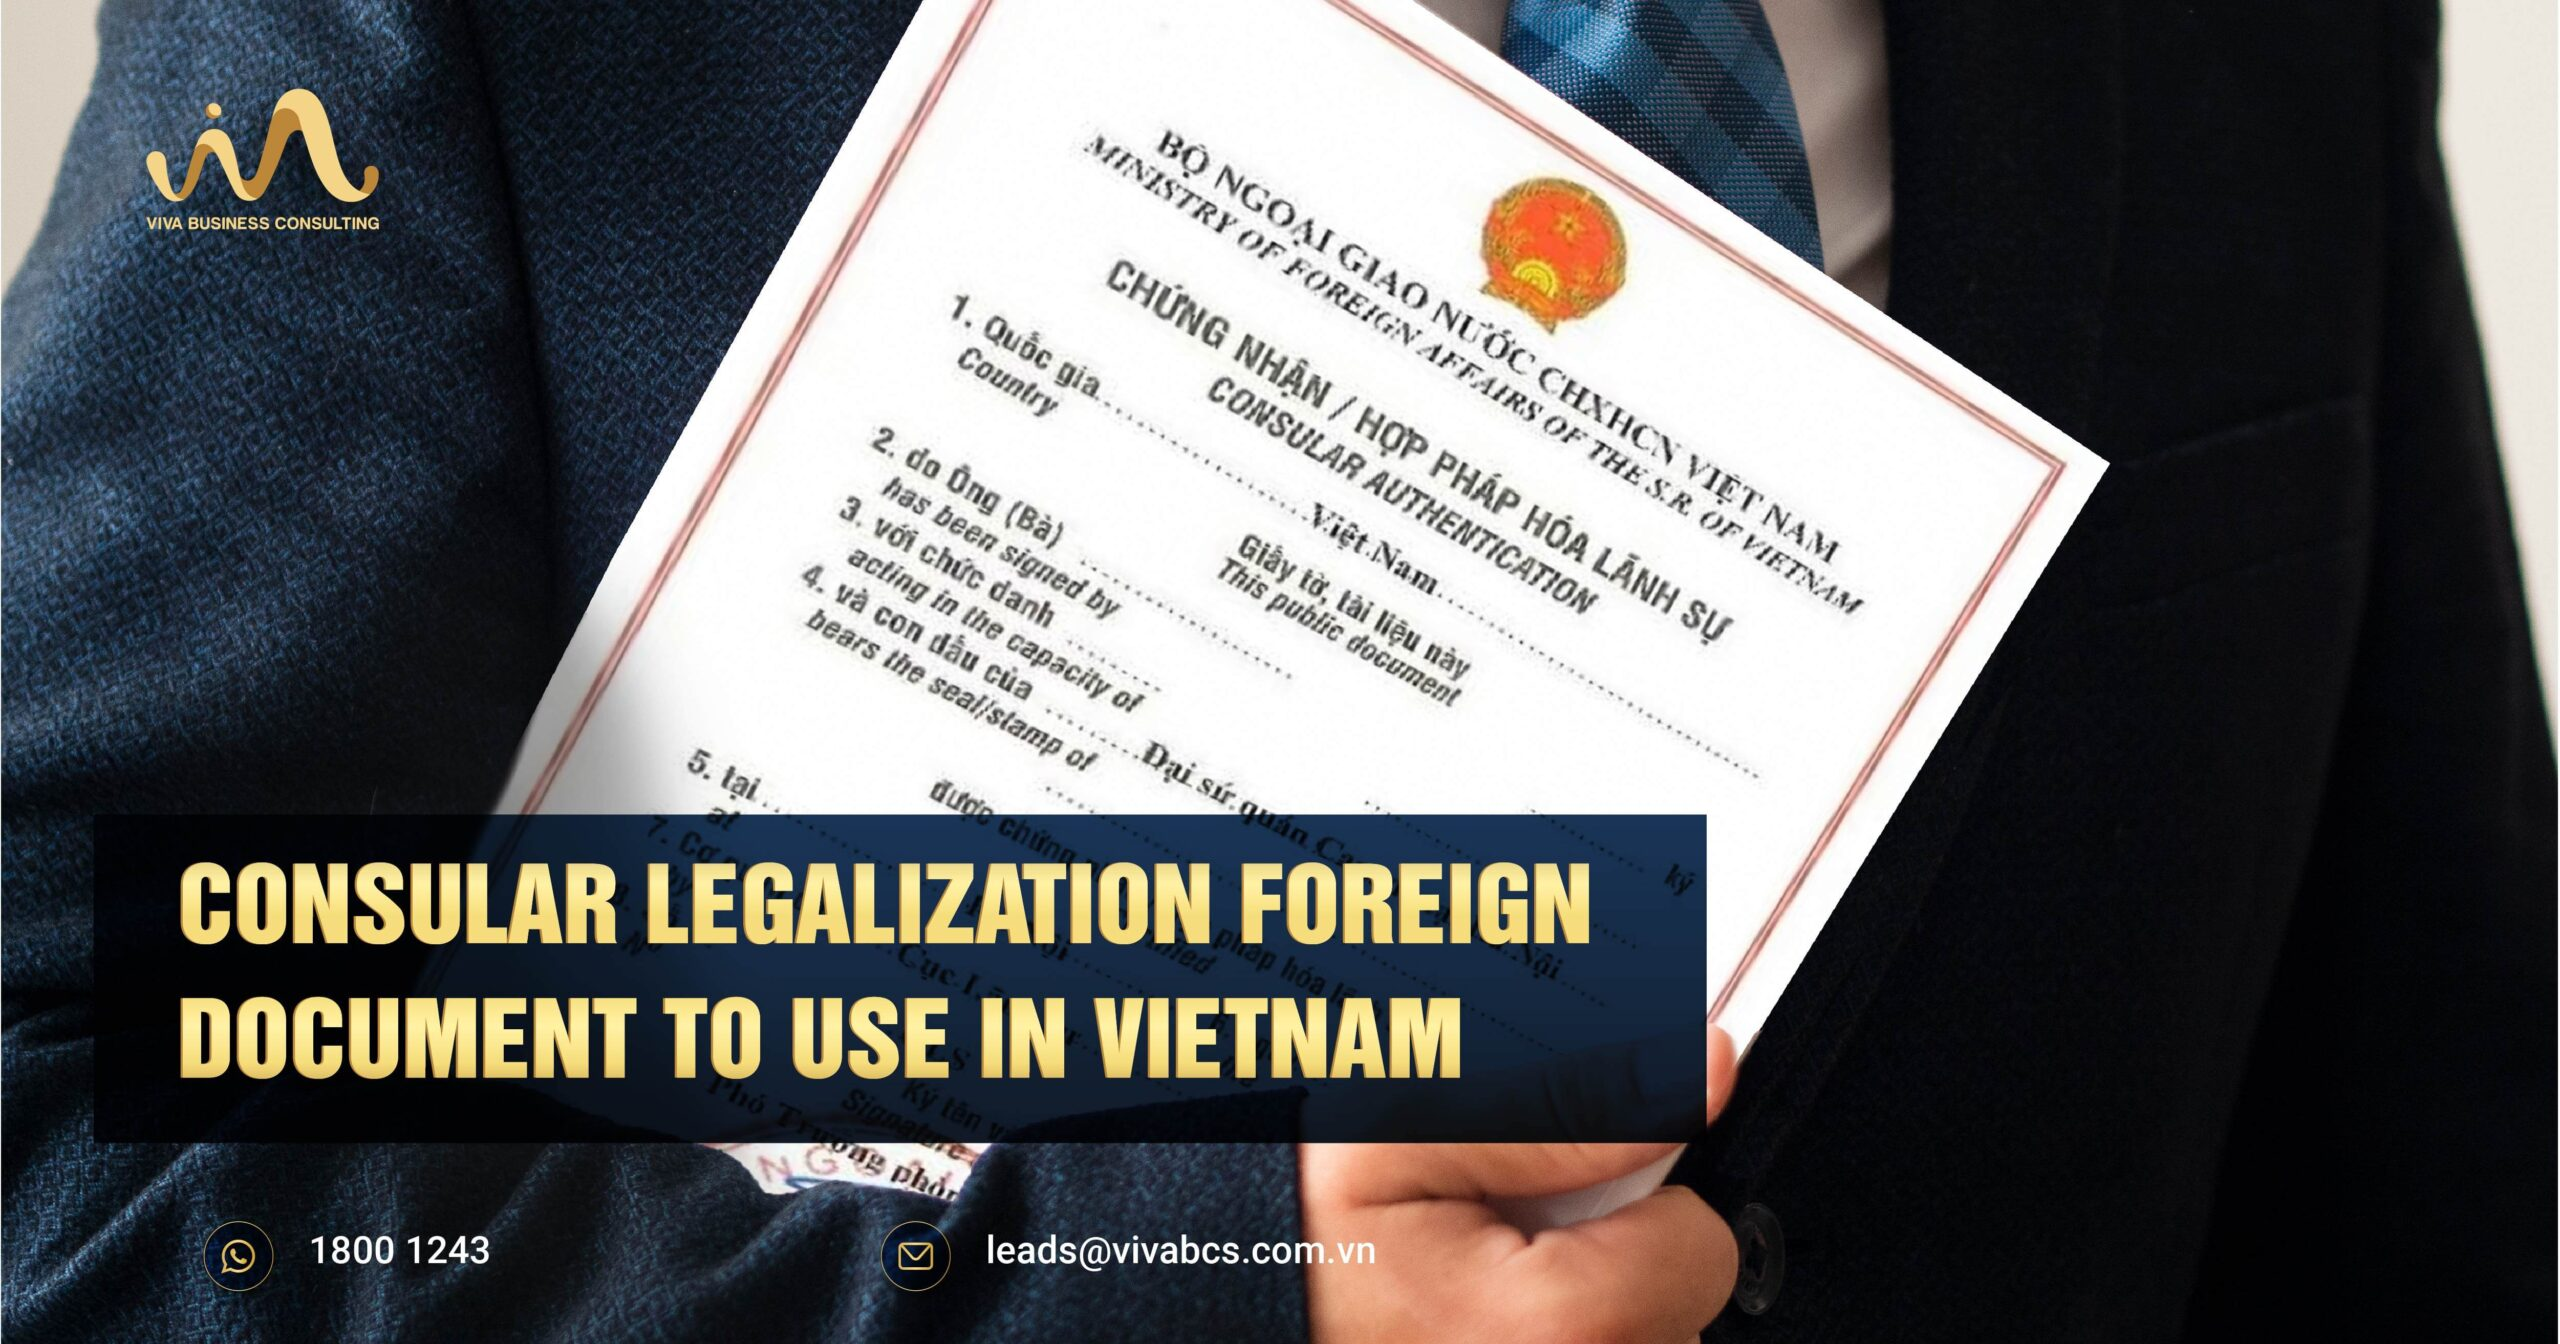 Consular Legalization Foreign Document To Use in Vietnam